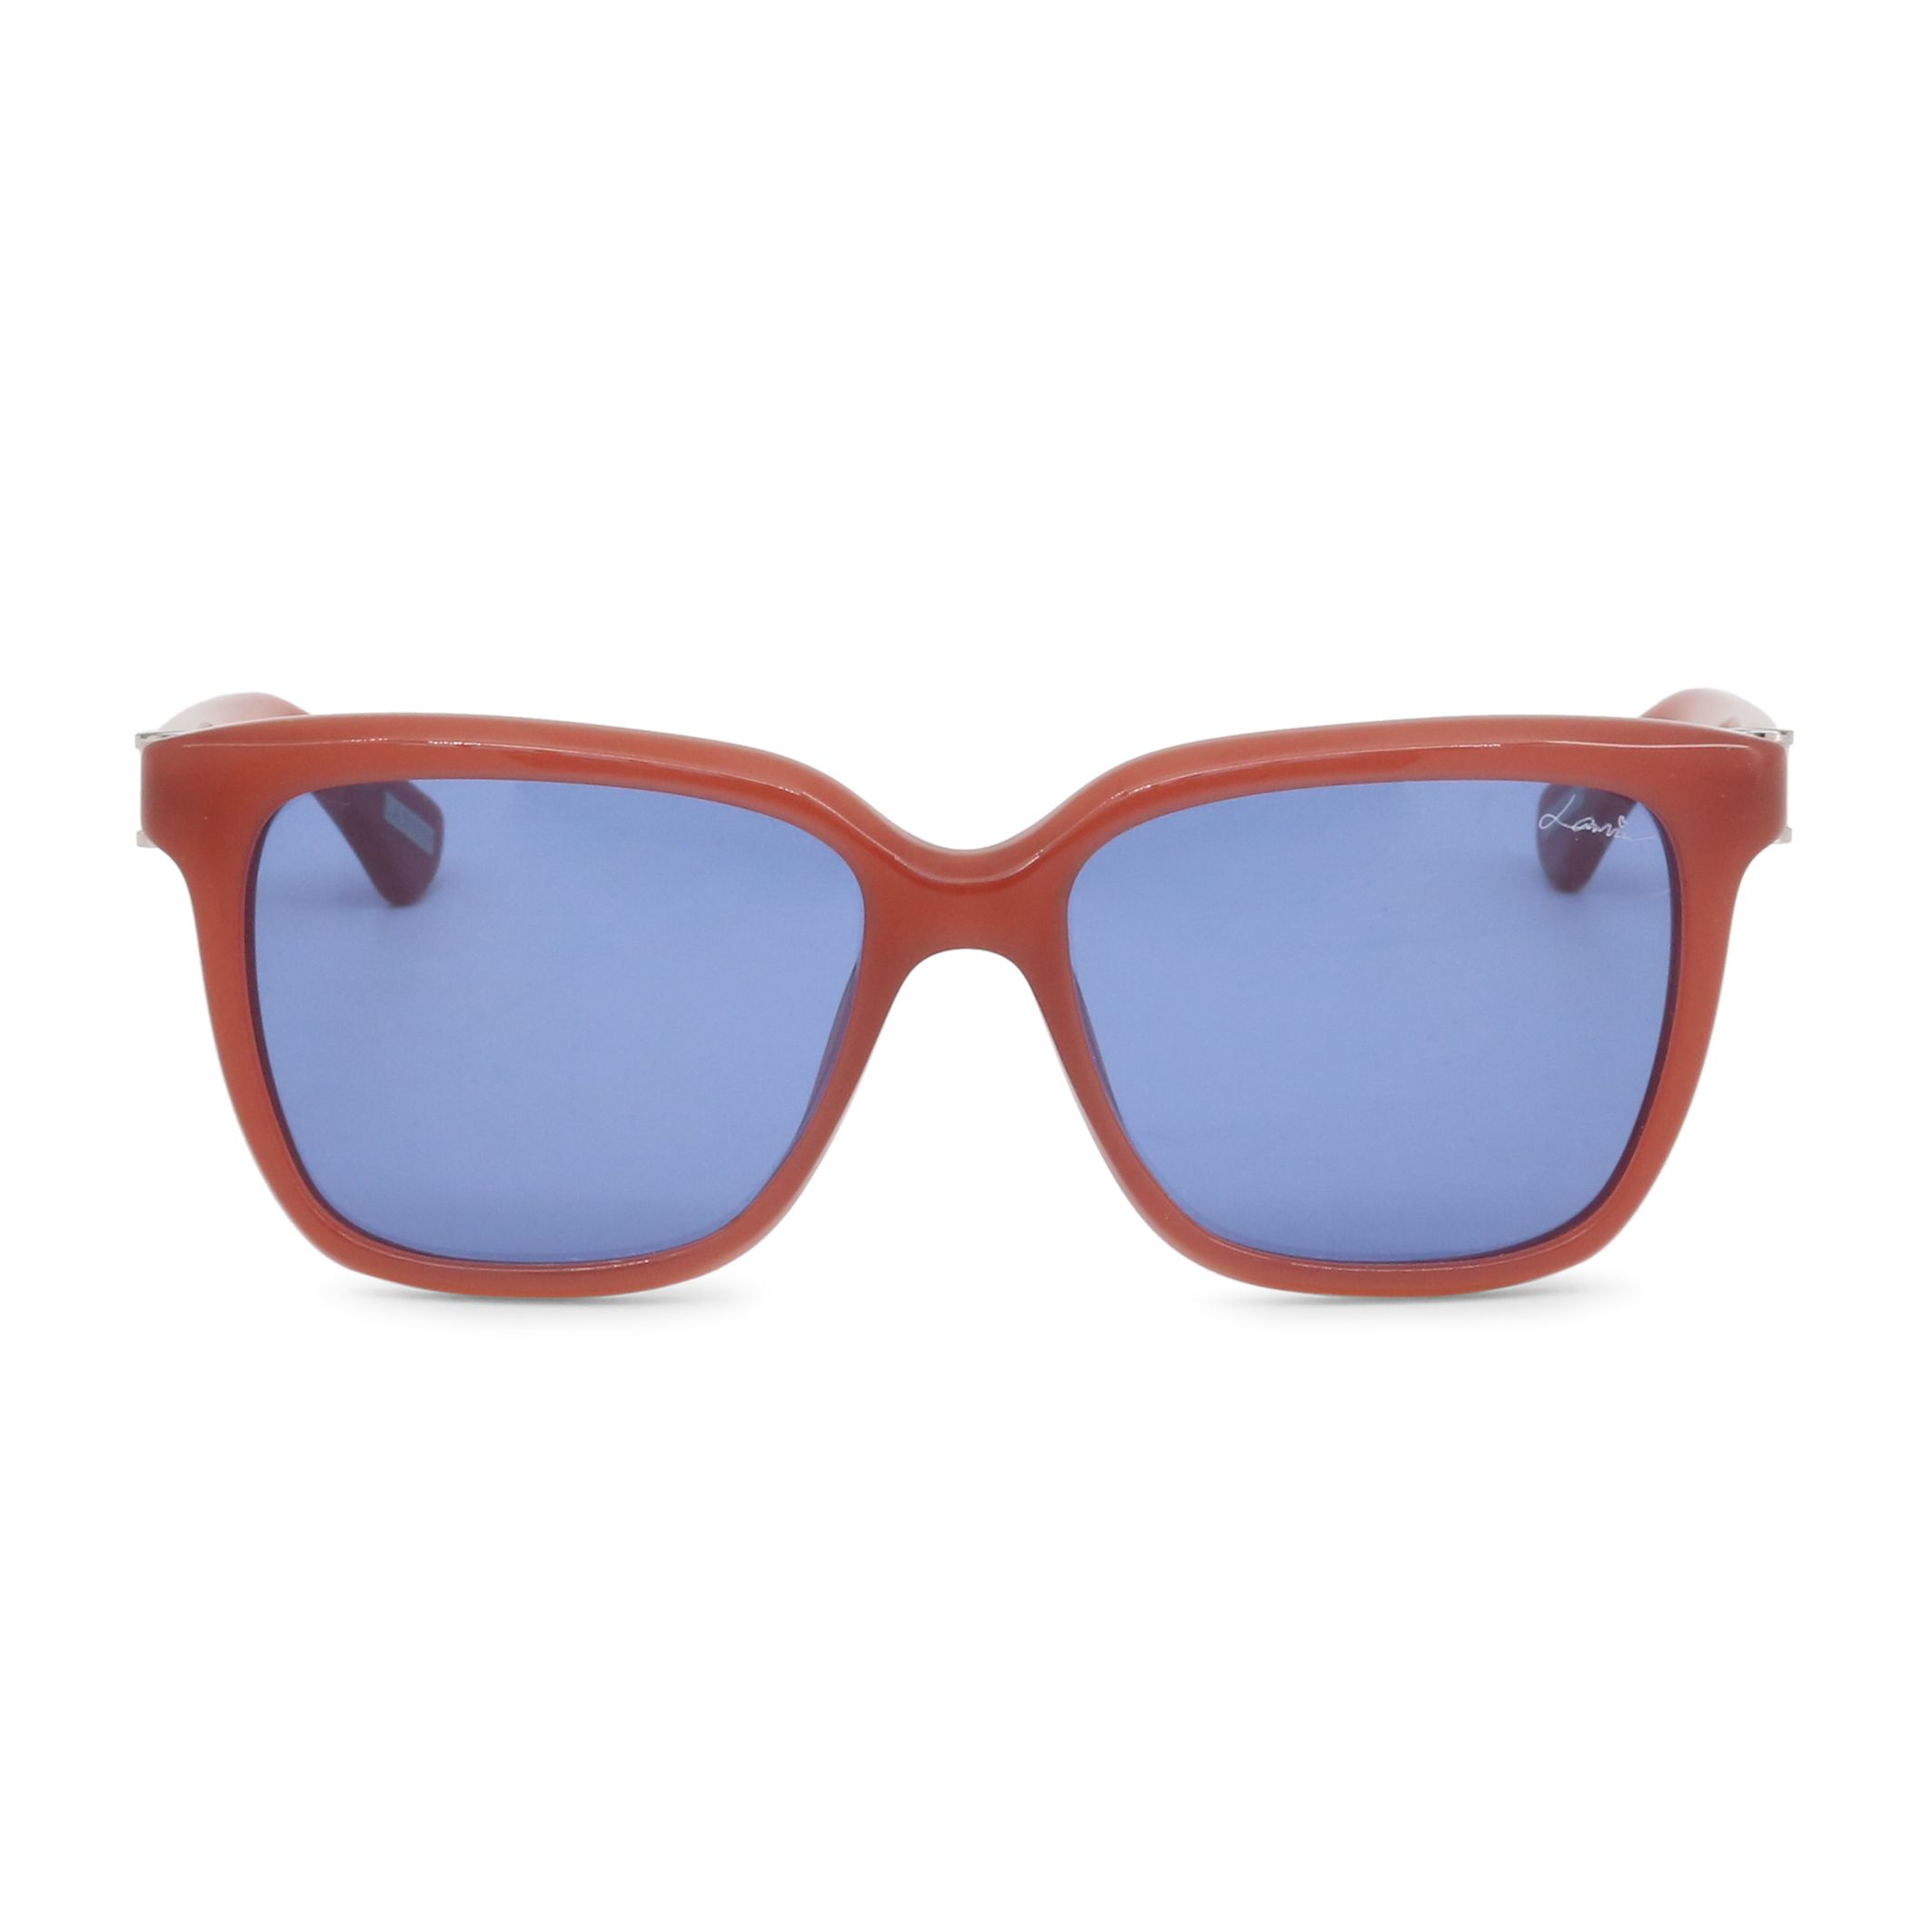 Lanvin Womens Sunglasses